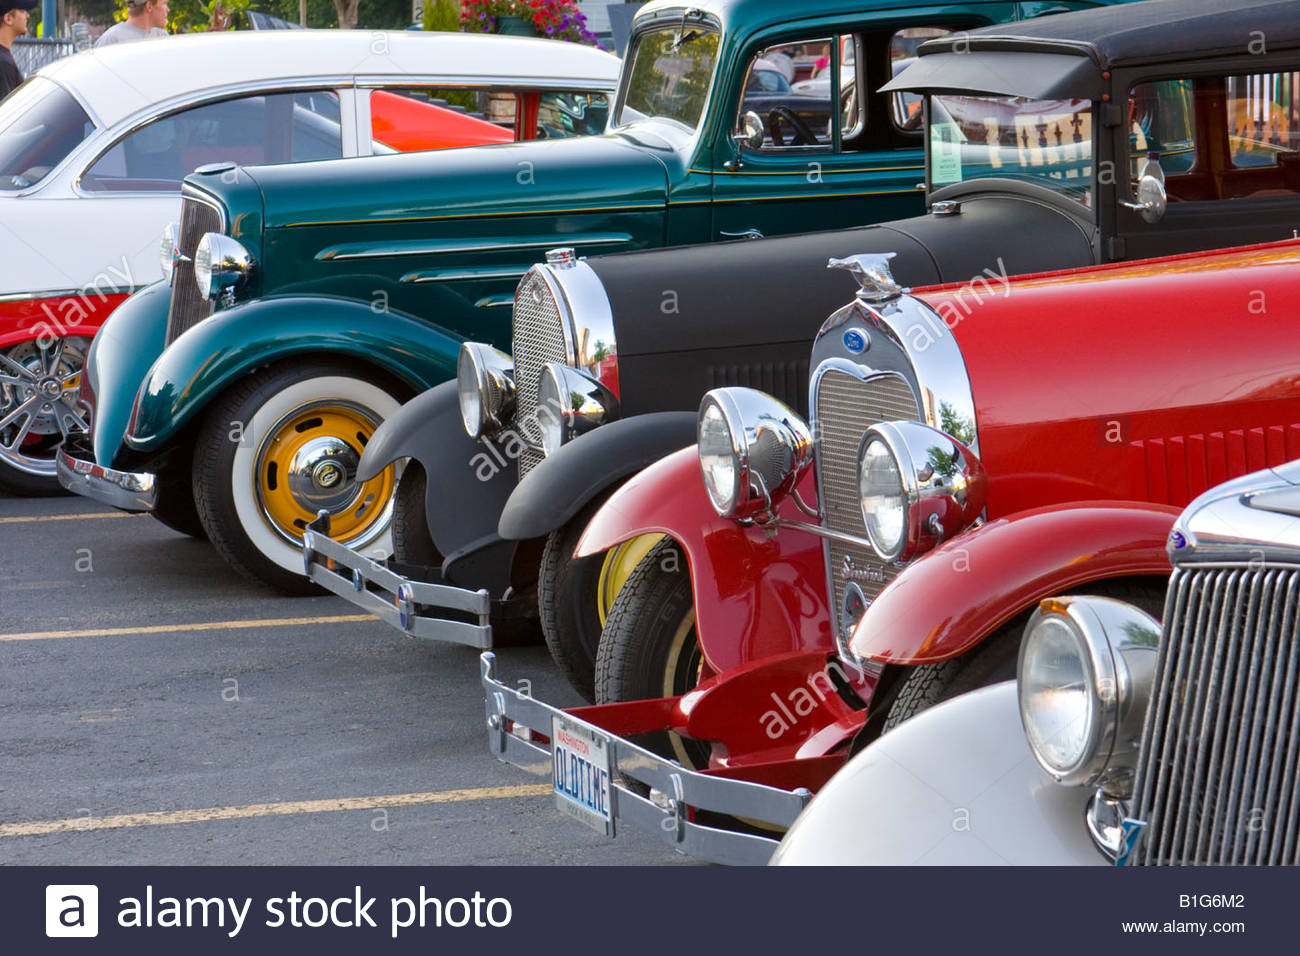 Vintage automobiles in a parking lot viewed from a public right of ...